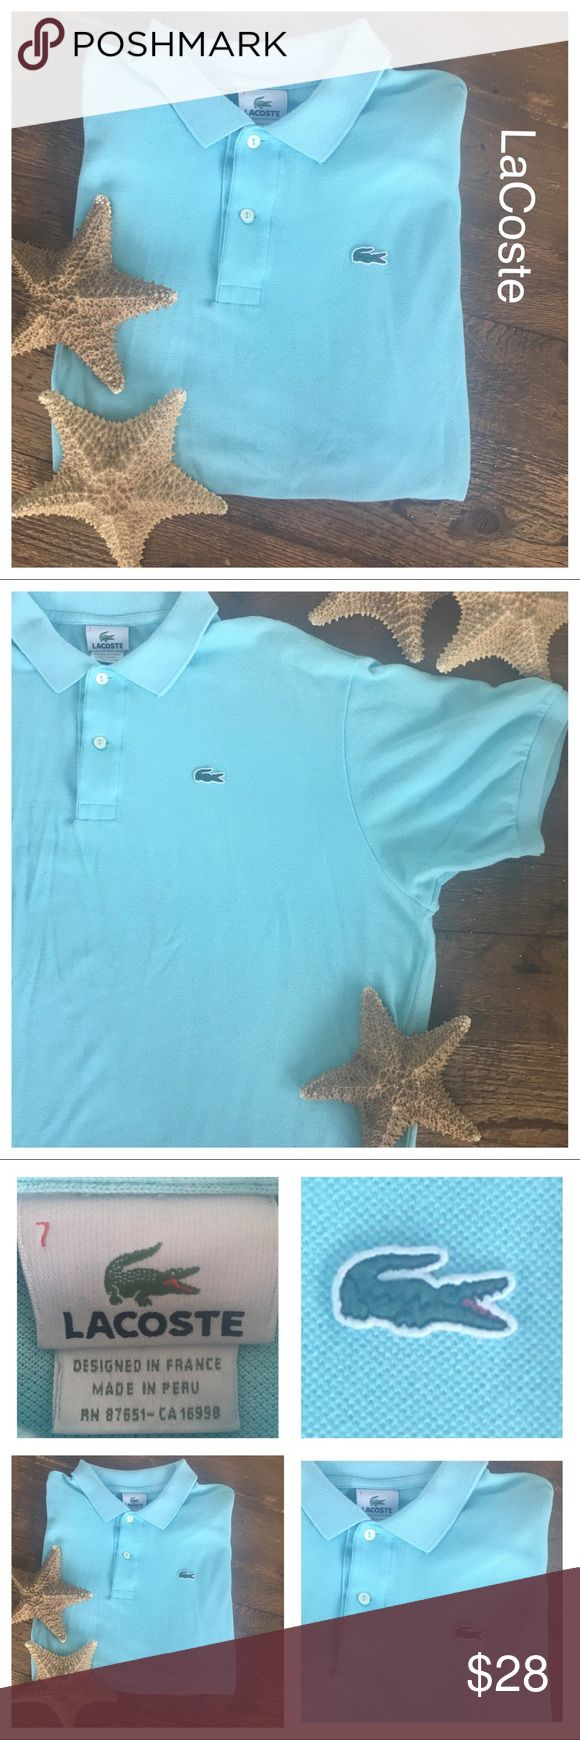 LACOSTE sharp & comfy cotton pique men's polo PRICE IS FIRM  UNLESS BUNDLING! LACOSTE Men's short sleeve cool and comfy polo.  The color is Eden. The size is European and reads 7 which, is equivalent to a size XXL in U.S.A. Classic fit. In excellent condition but, shows minor normal wash wear.   René Lacoste's iconic creation: our timeless petit piqué knit polo is soft, durable, and endlessly stylish. A must have in multiple colors. 100% Cotton Classic Fit Ribbed Collar And Armbands…